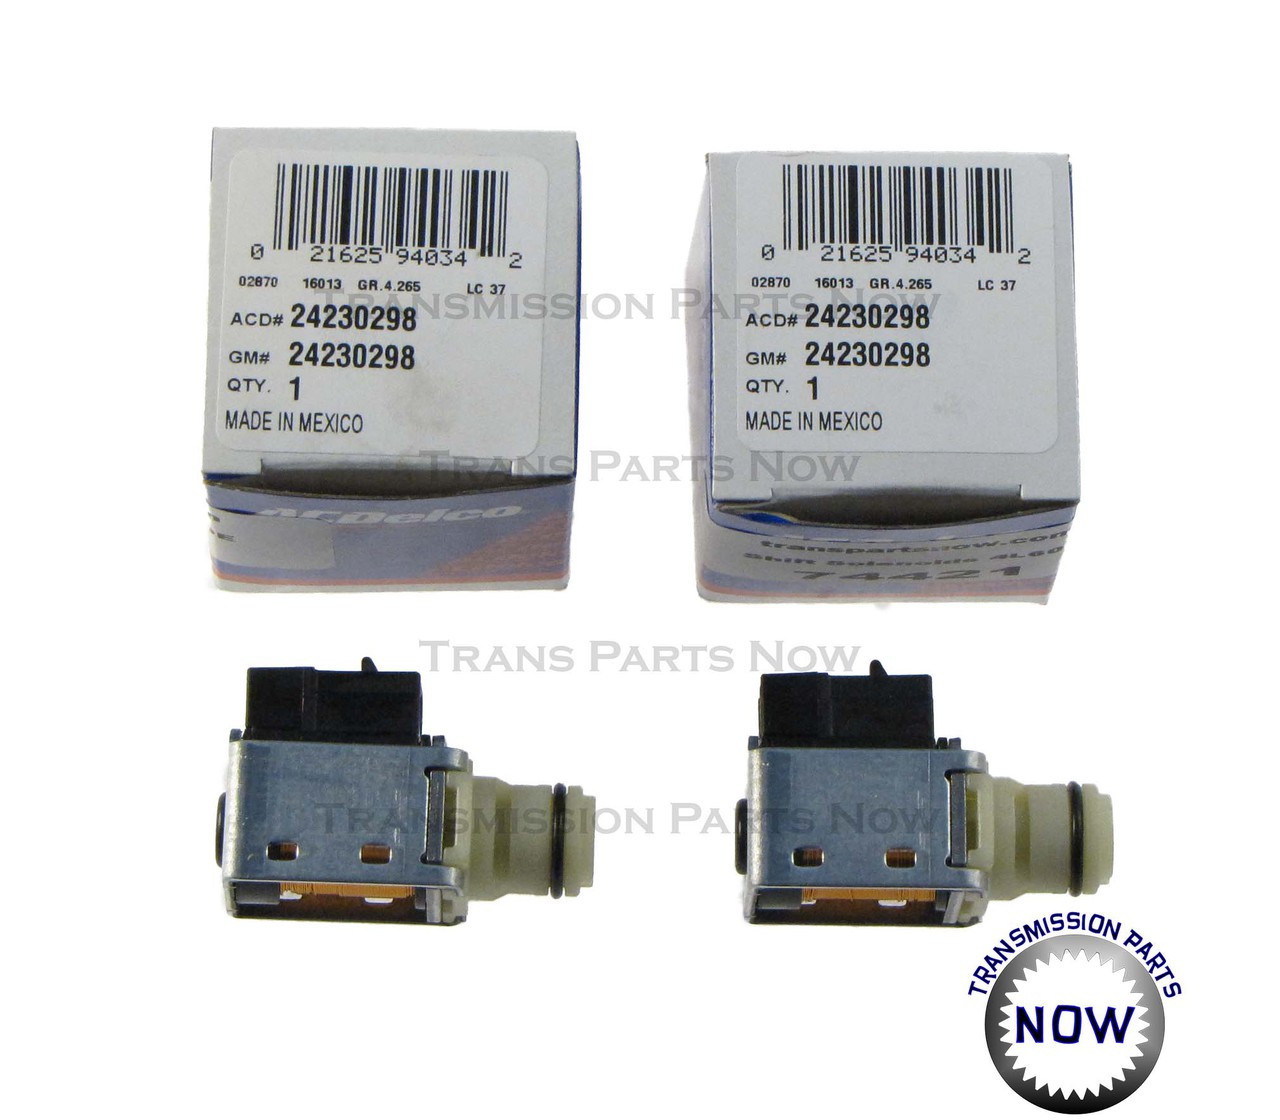 Shift Solenoid Kit Ac Delco Two Shift Solenoids 4L60E 4L65E 4L70E